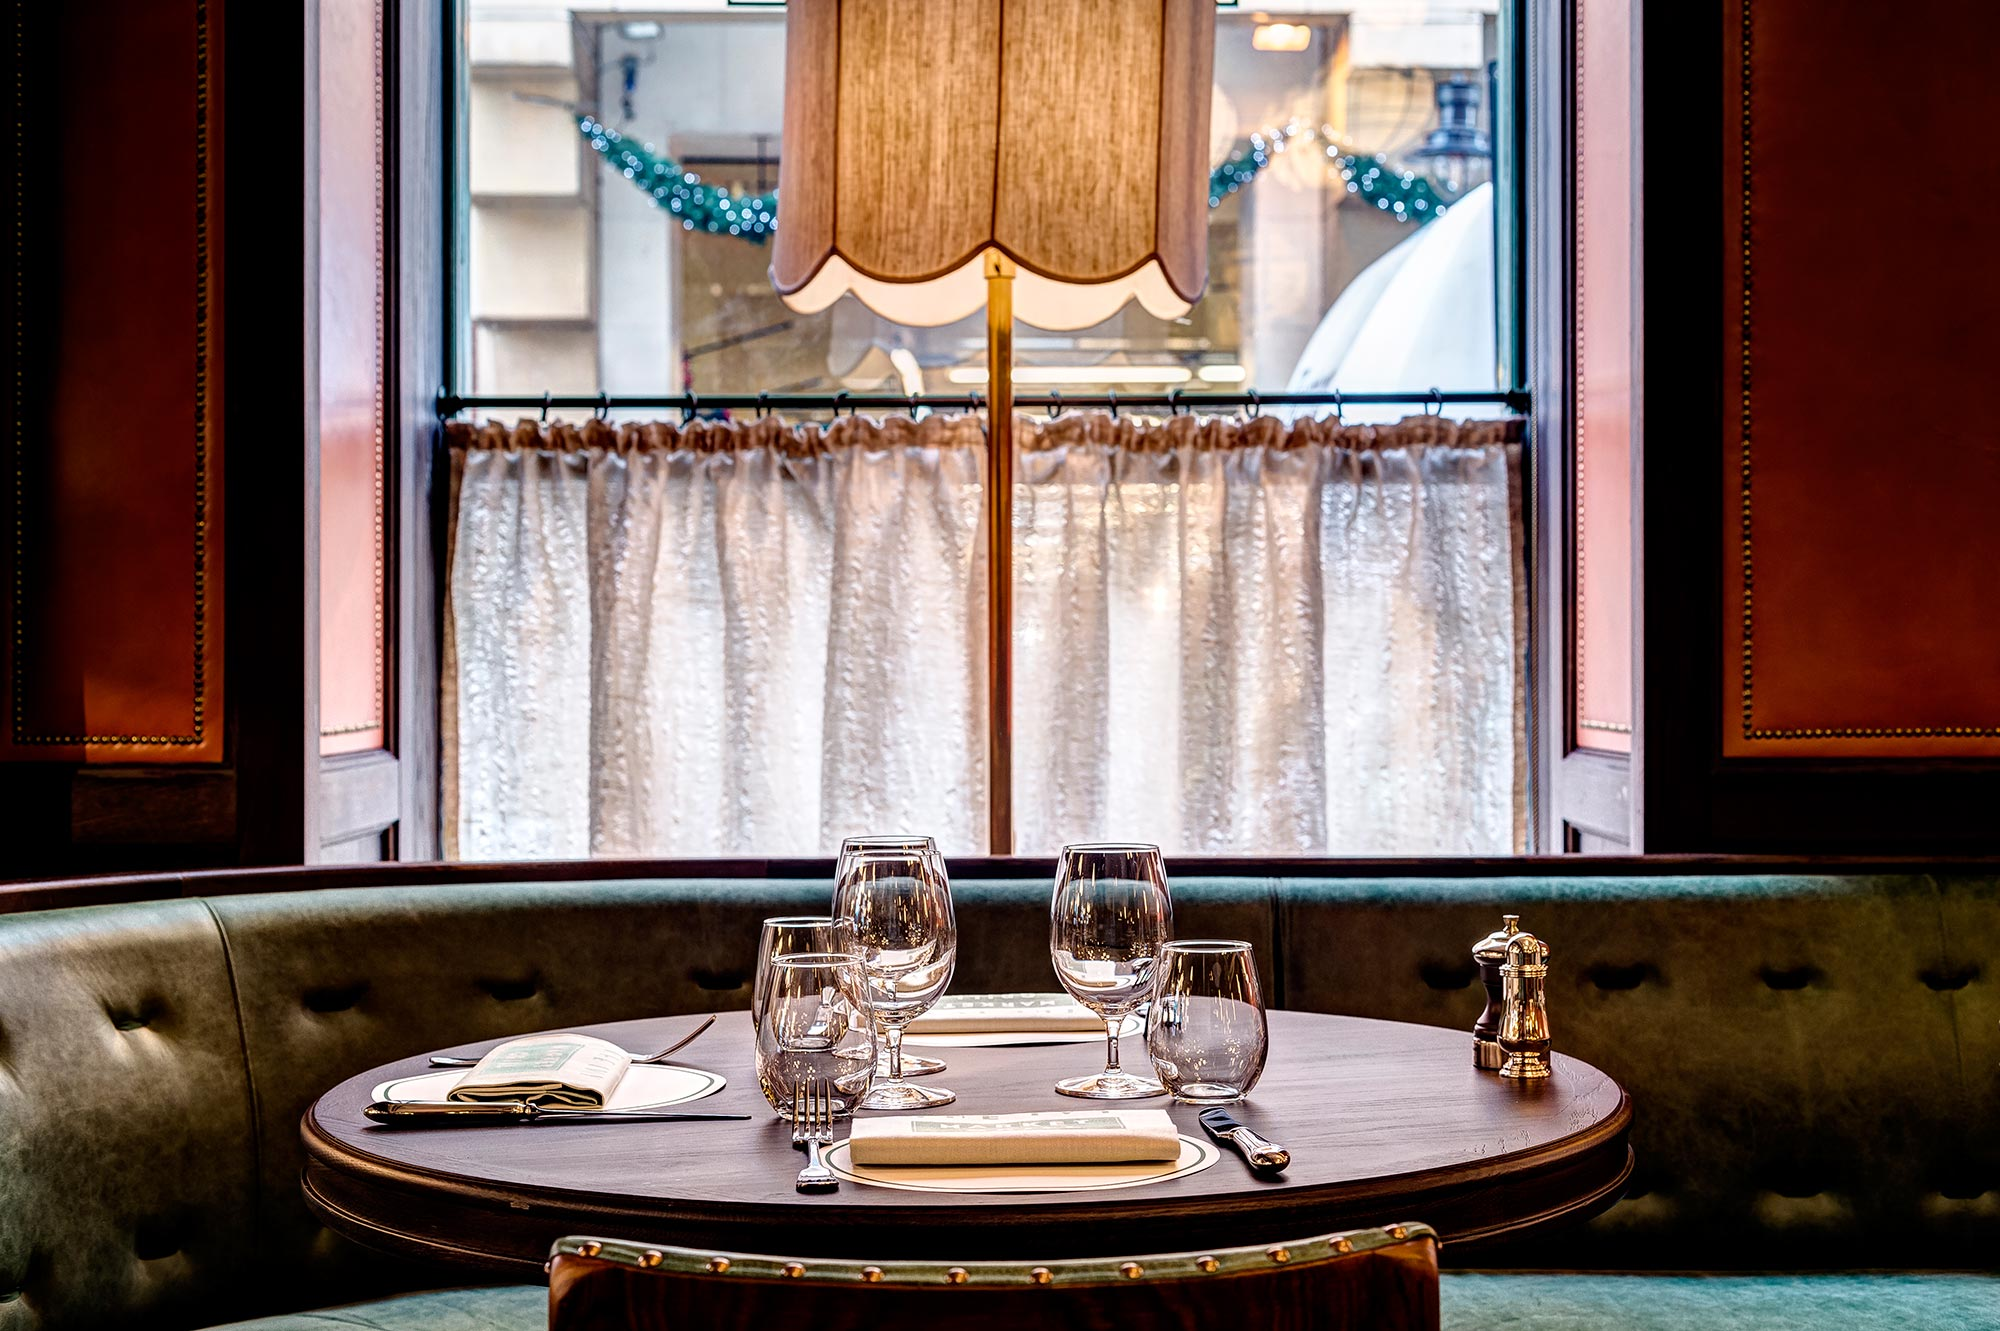 The Ivy Market Grill in Covent Garden by Paul Winch Furness - The Ivy Market Grill